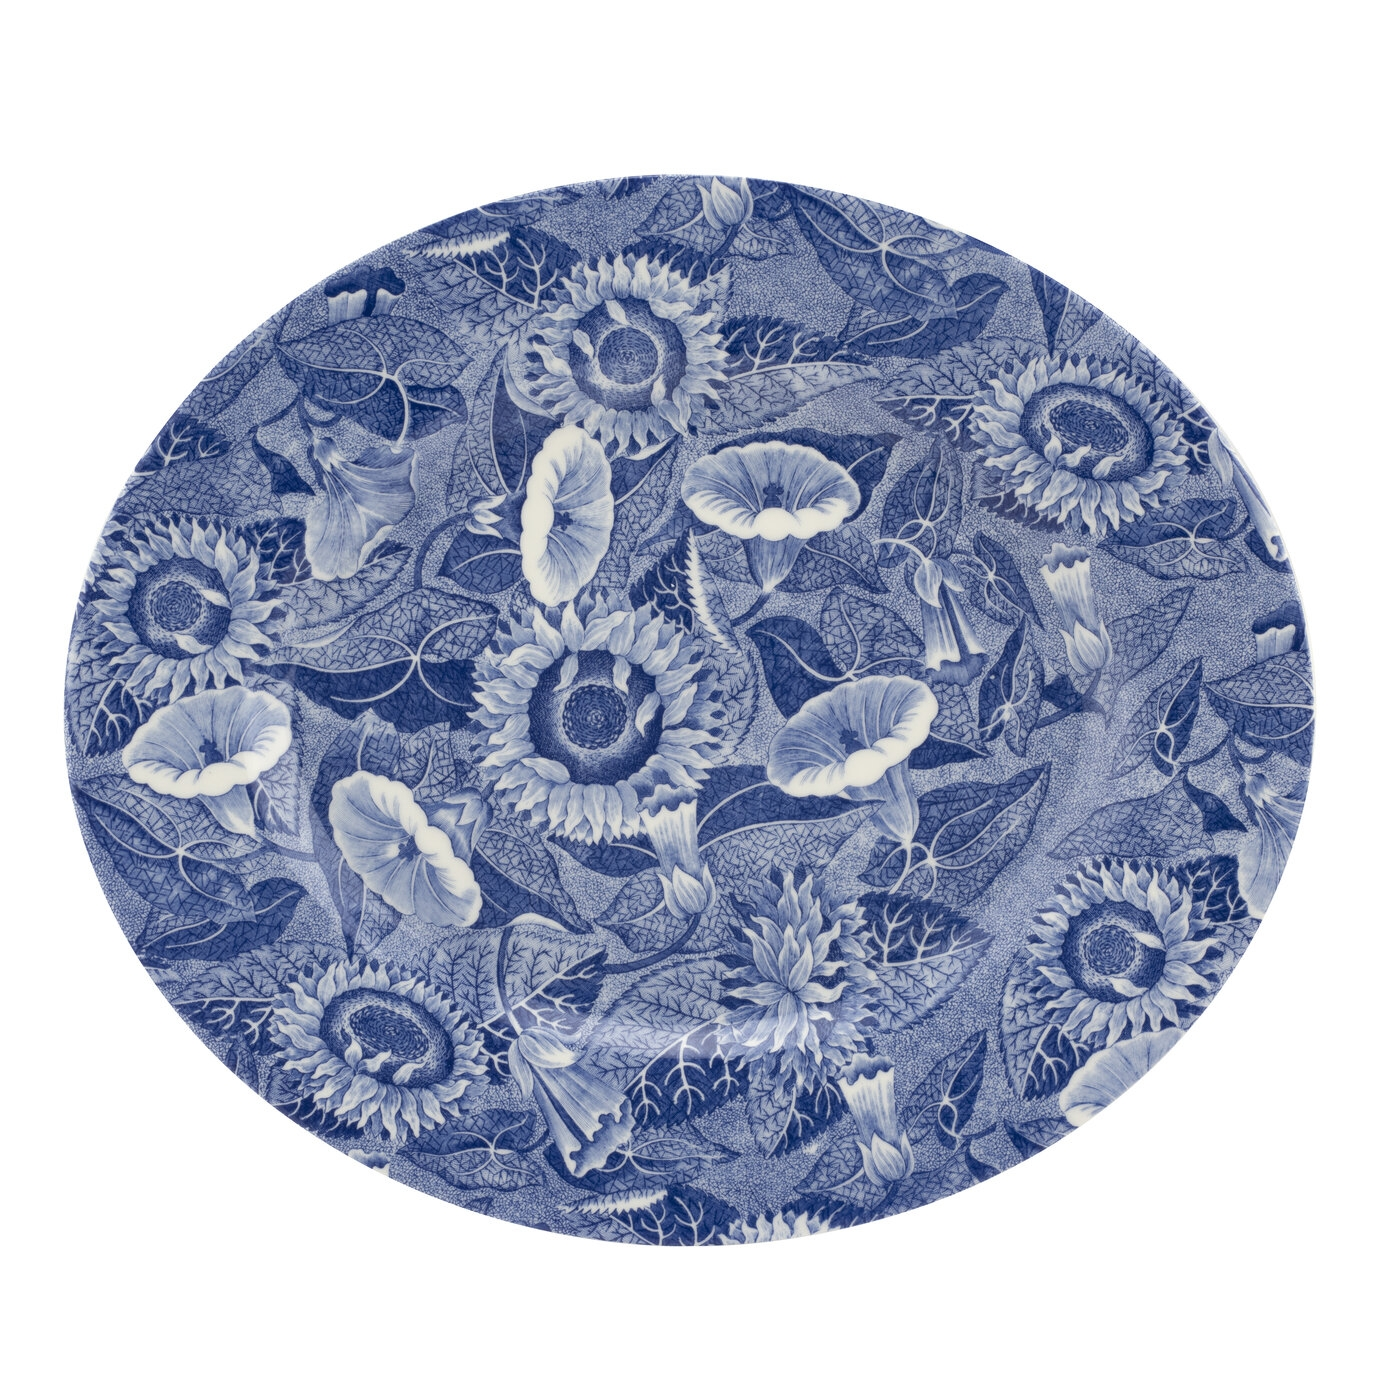 Spode Blue Room Sunflower 14 Inch Oval Platter image number null